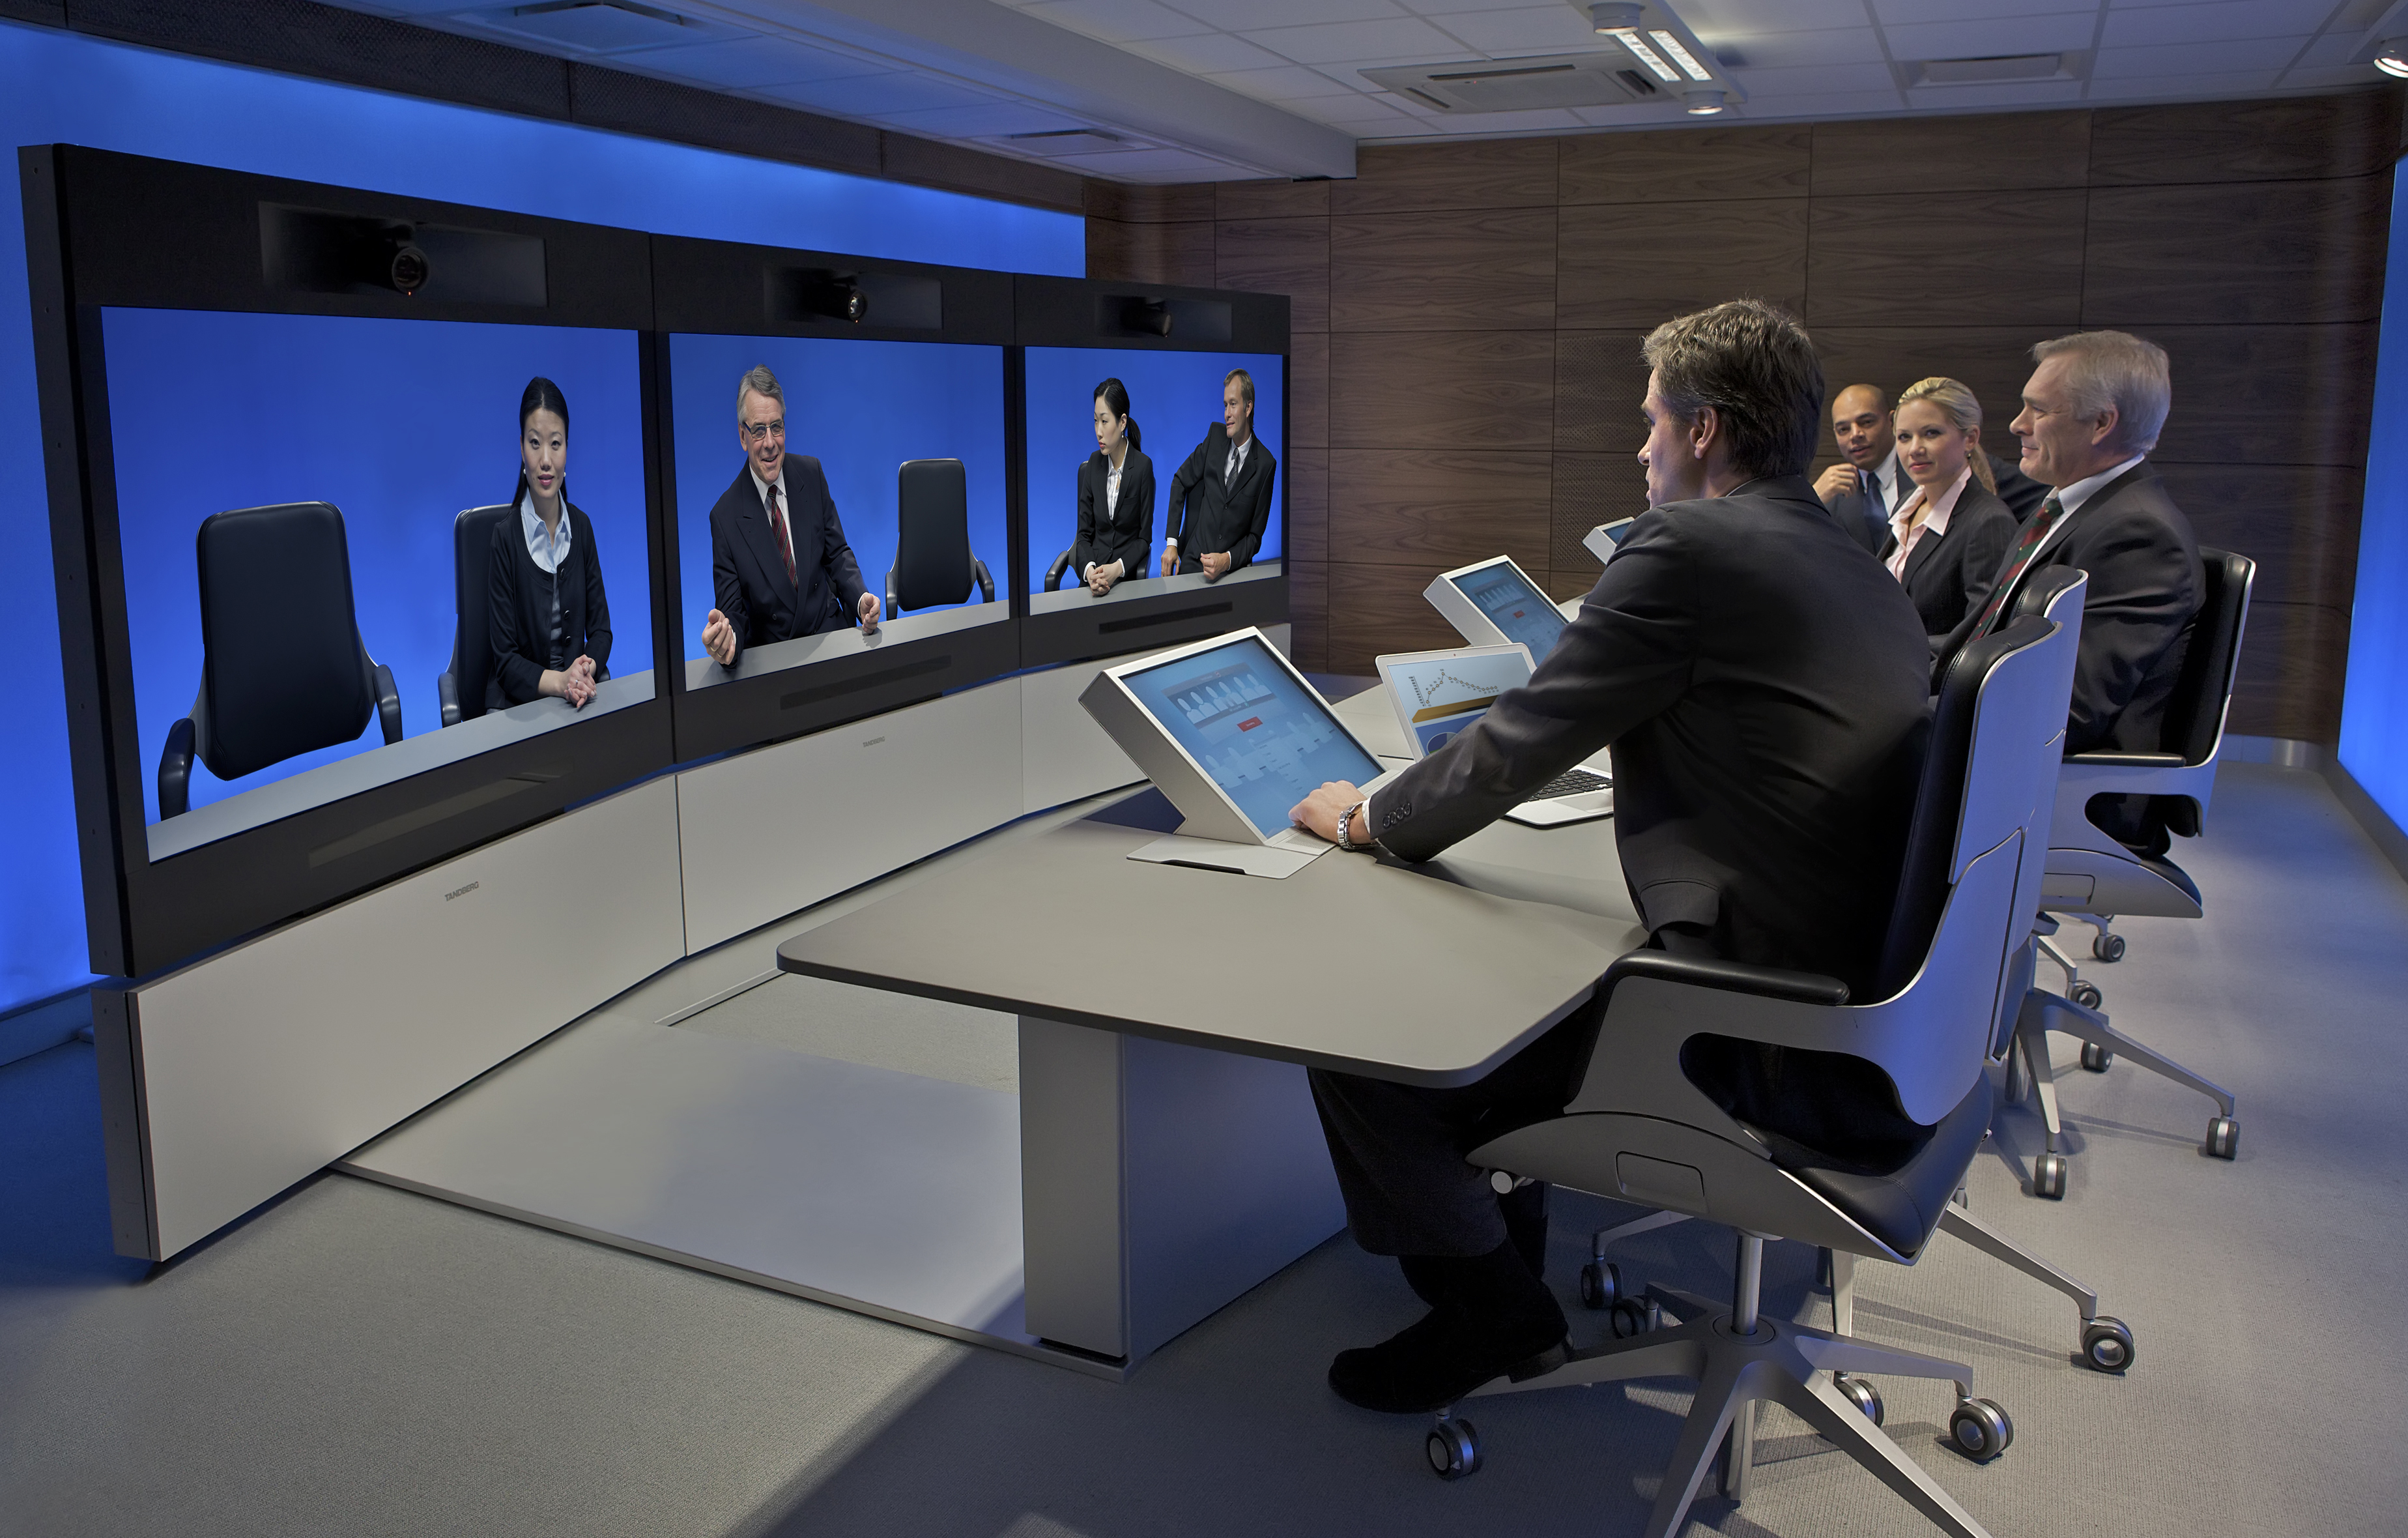 A Tandberg T3 high resolution telepresence room in use (2008).